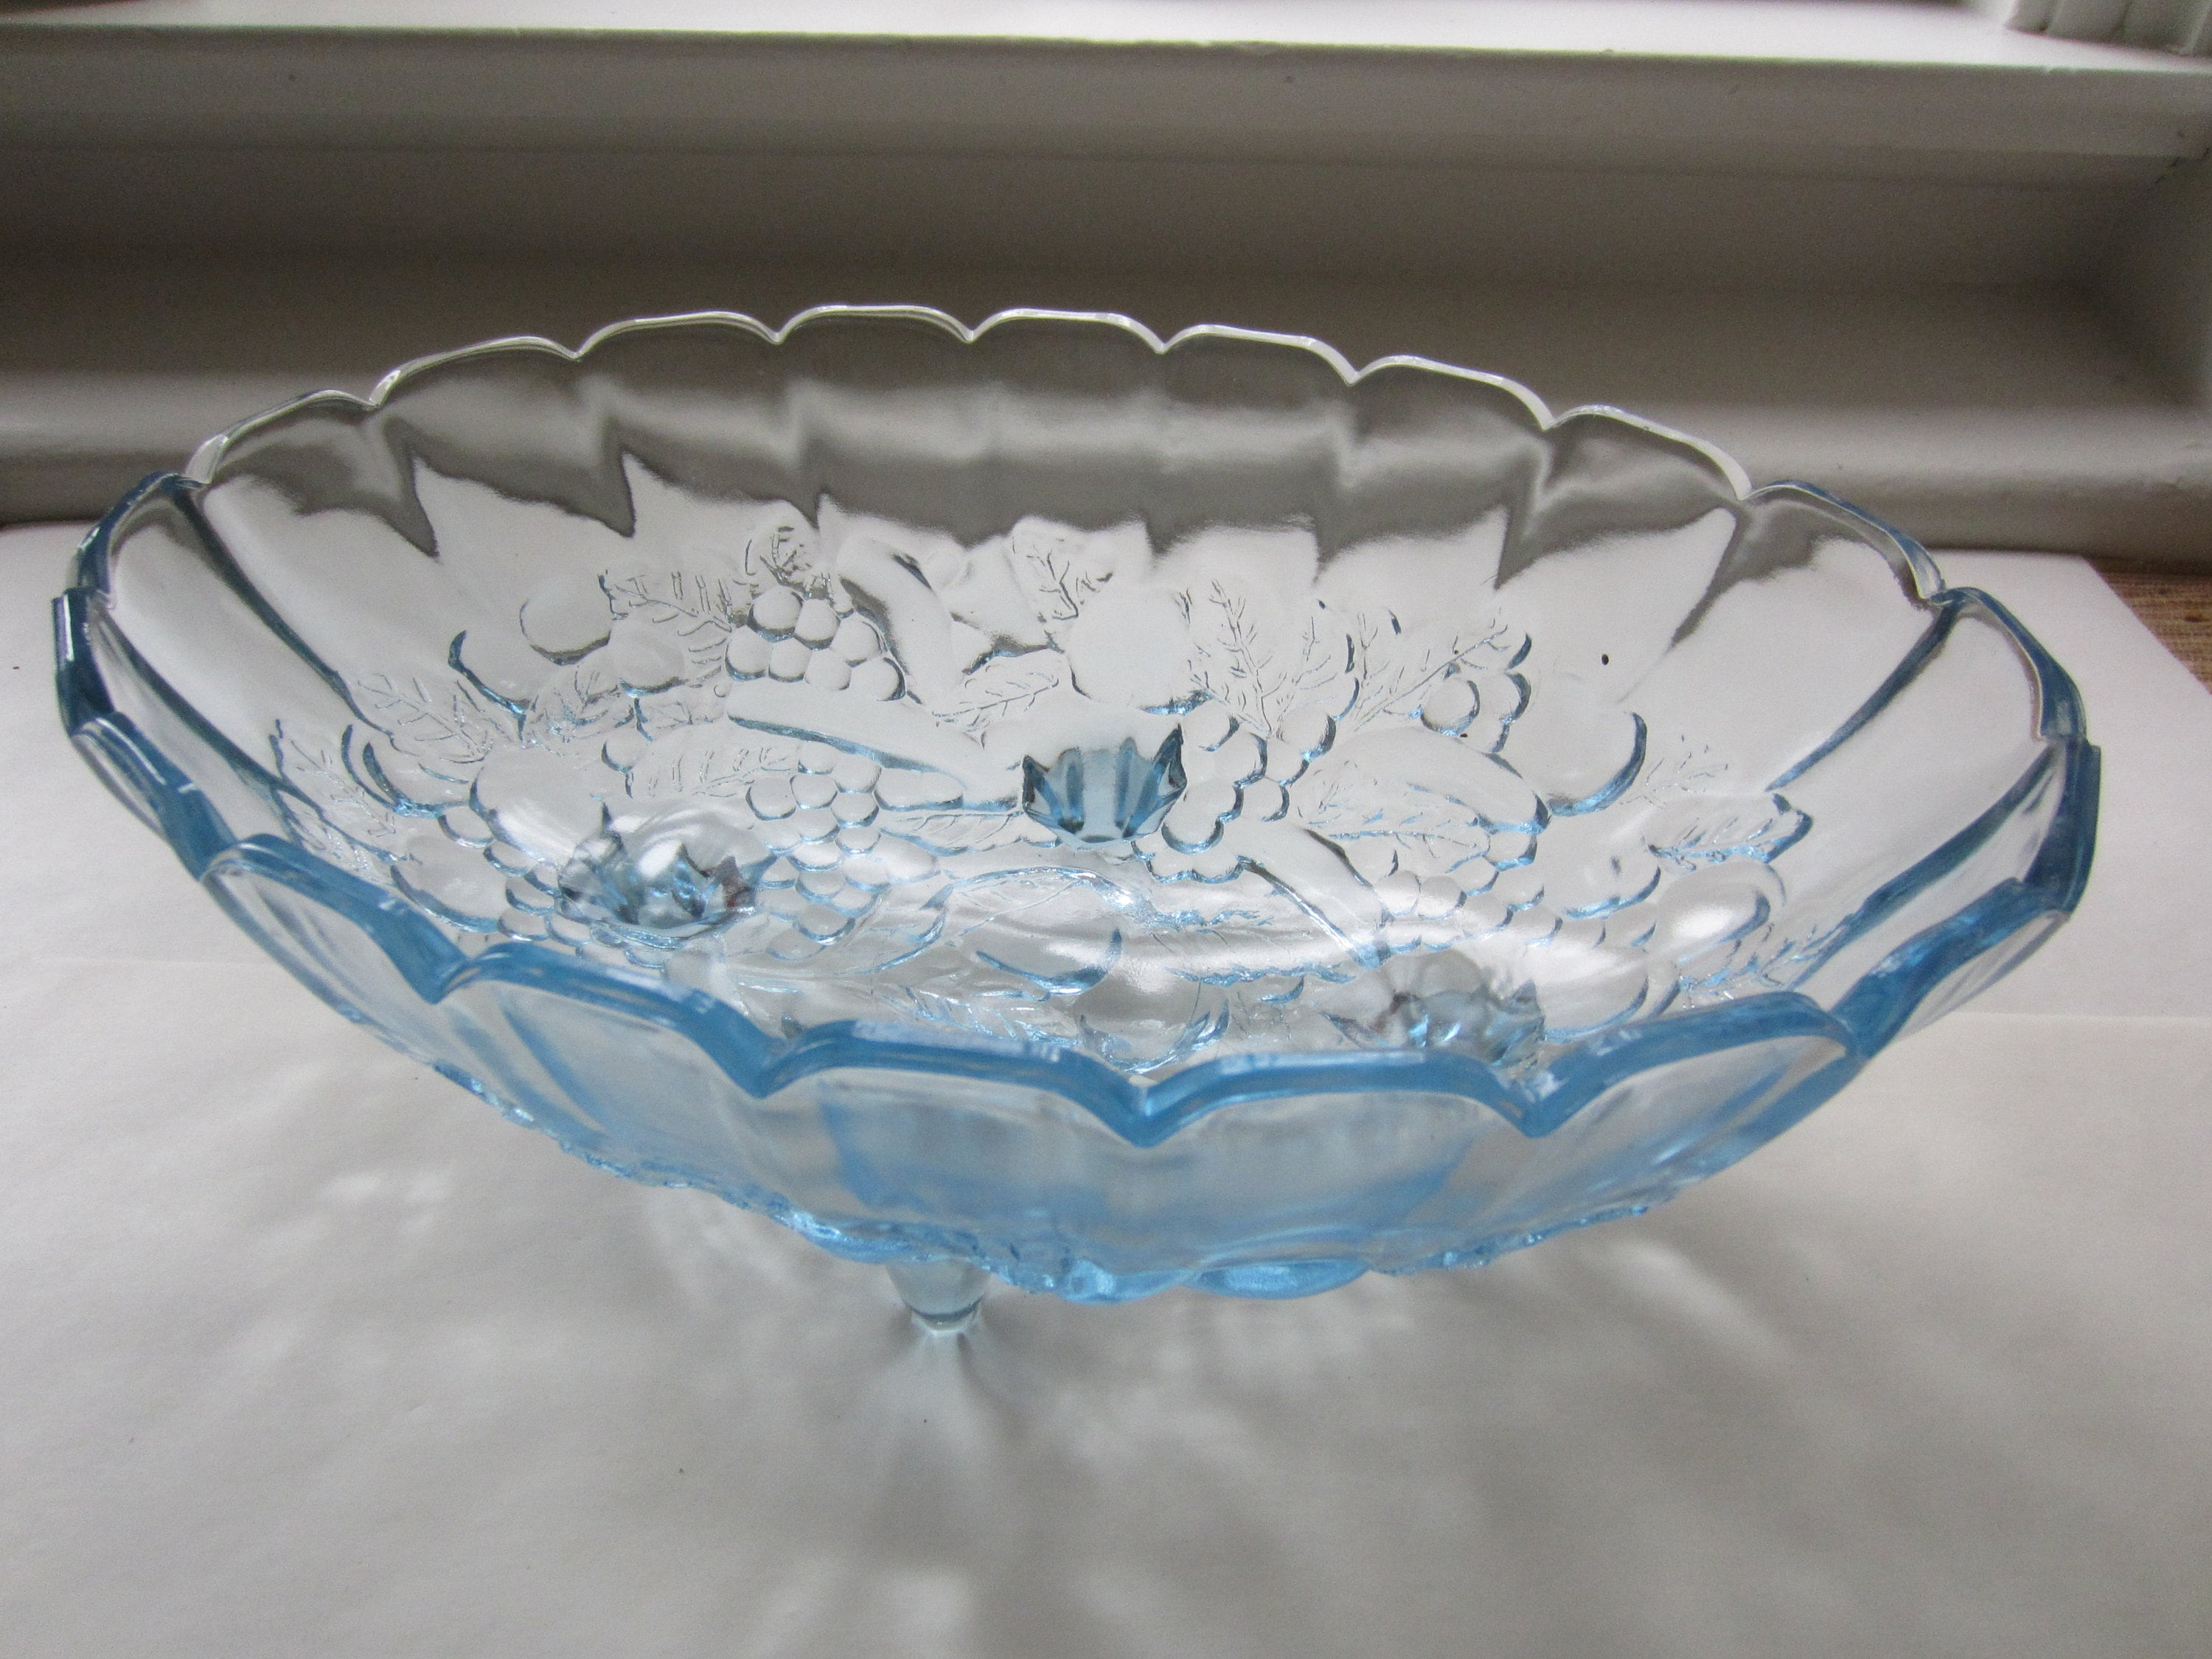 Decorative Glass Bowls Vintage Blue Glass Bowl Four Footed Bowl Glass Decorative Bowl Glass Serving Bowl Vintage Dining And Serving Scalloped Edge Bowl